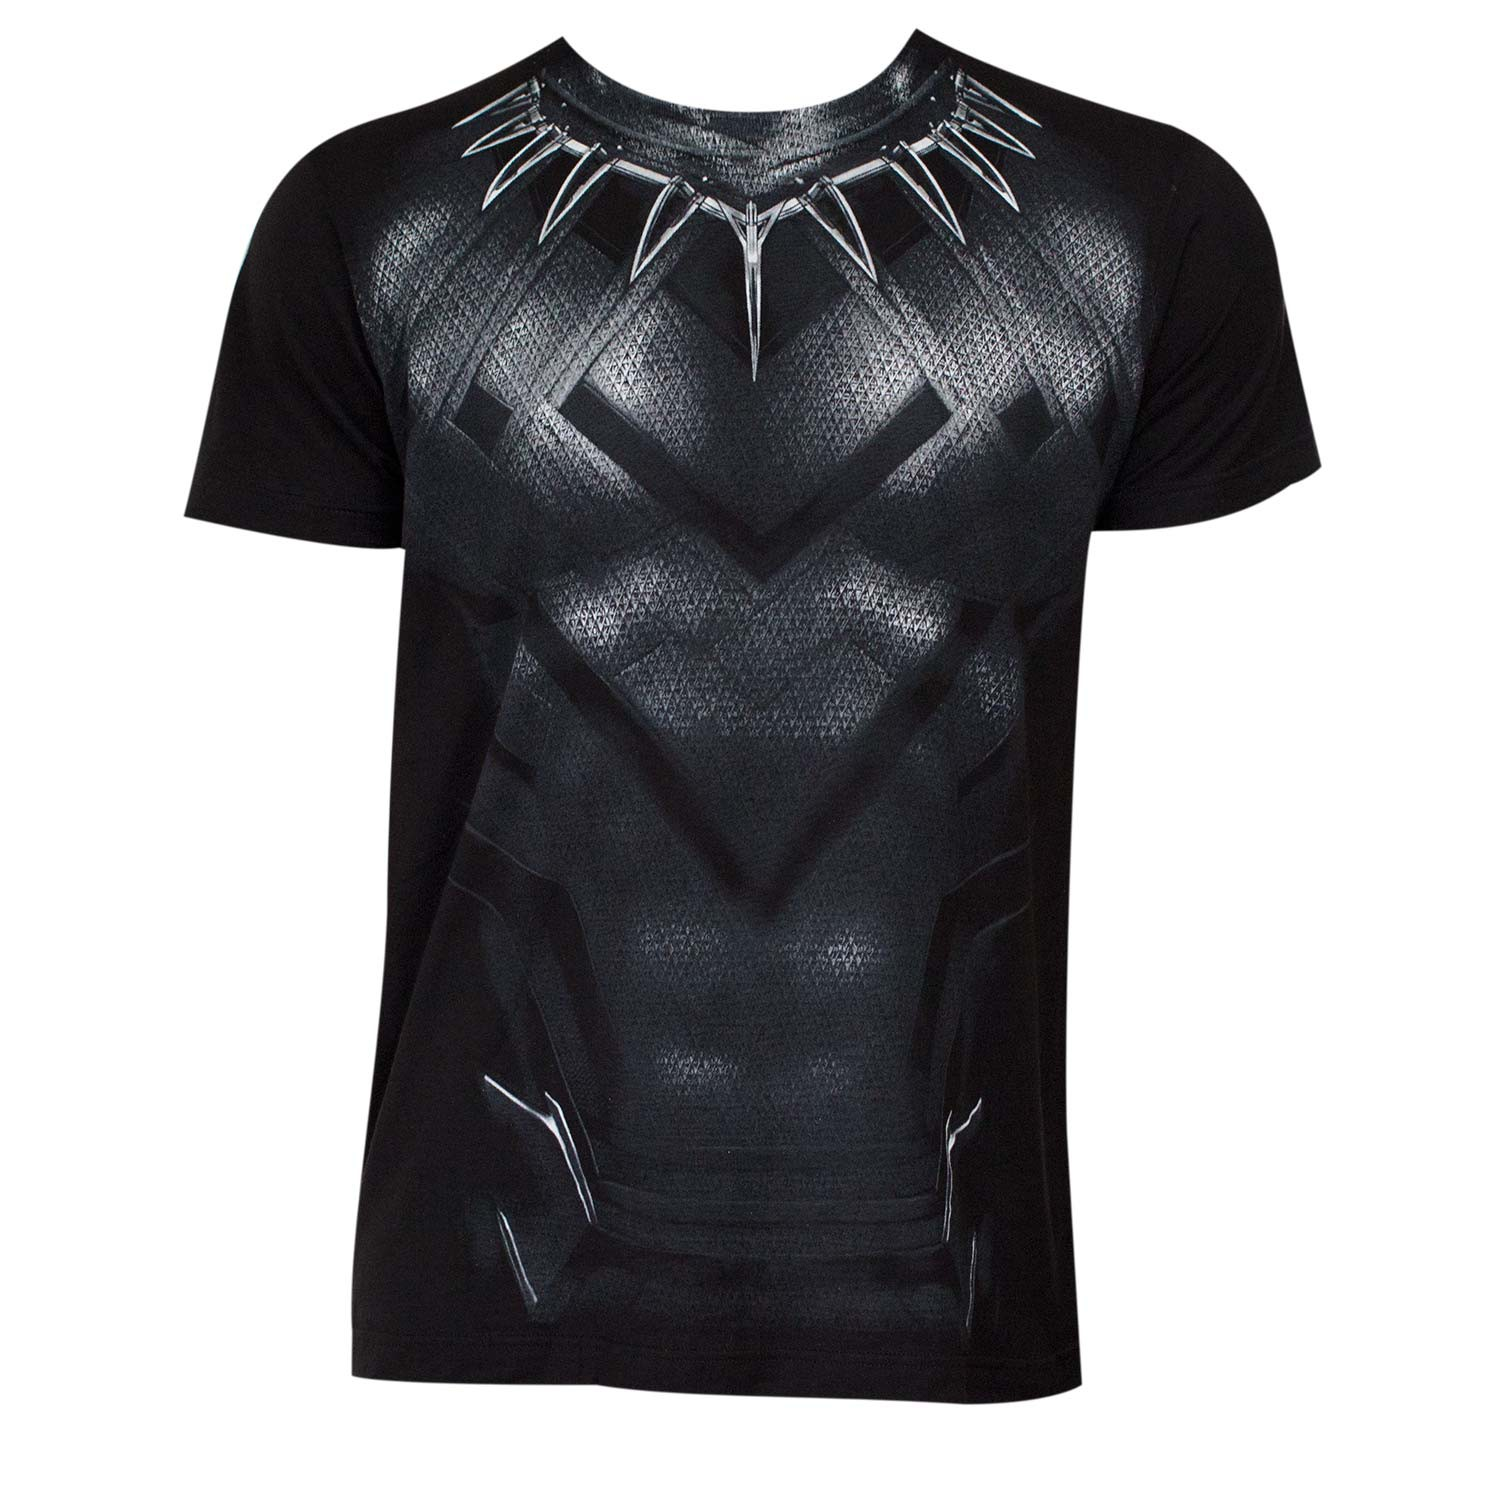 Captain America Civil War Black Panther Movie Suit Men's Costume T-Shirt